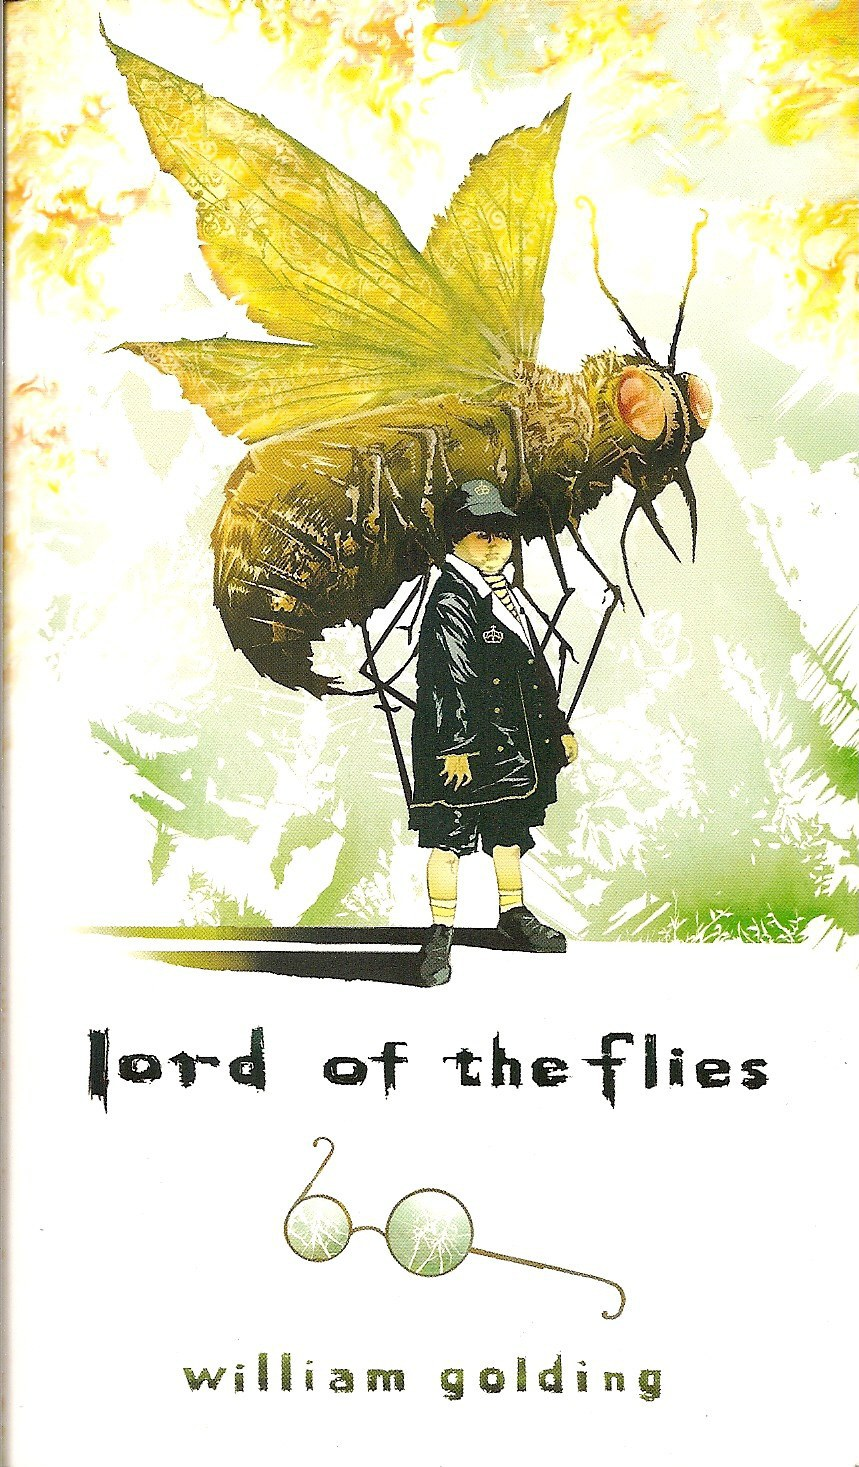 analysis of lord of the flies Yes, analyzing analysis isn't particularly exciting but it can, at least, be enjoyable care to prove us wrong.